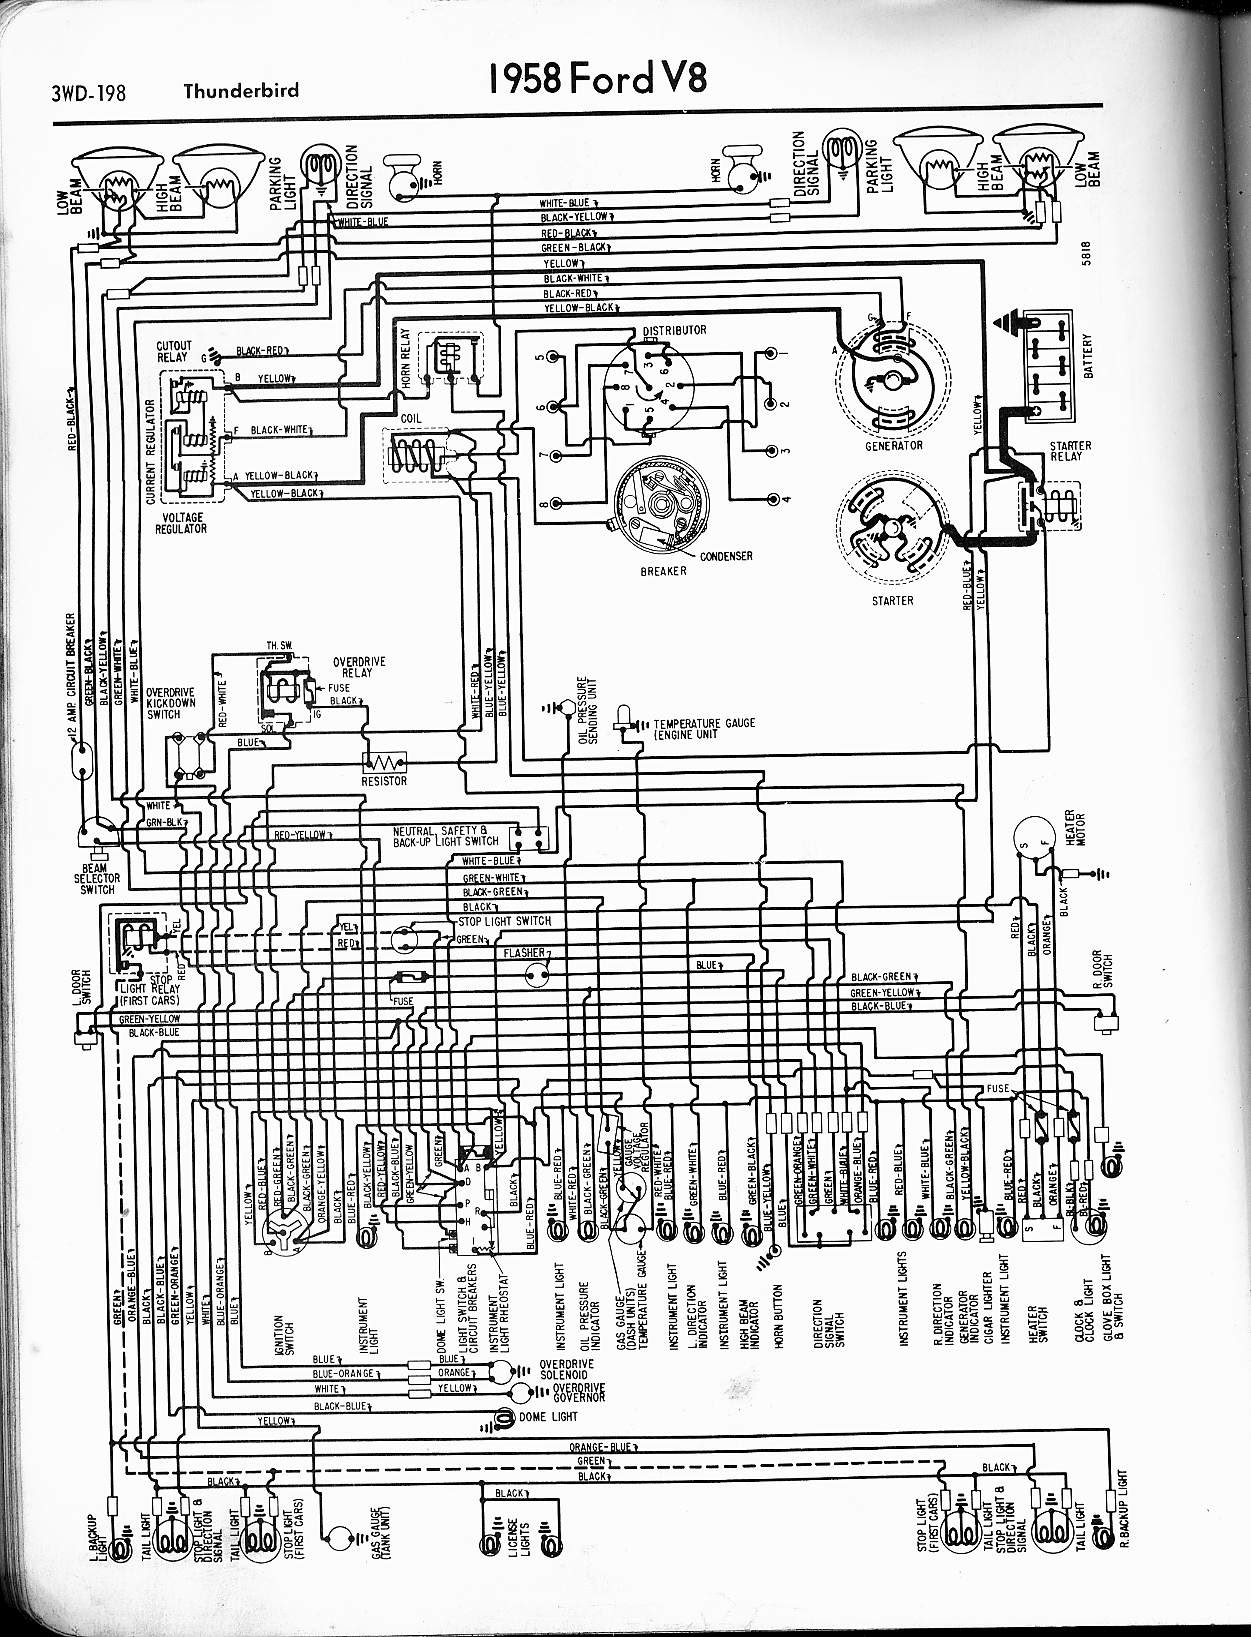 1977 Ford Custom 500 Wiring Diagram Wiring Diagram Starter Starter Pasticceriagele It